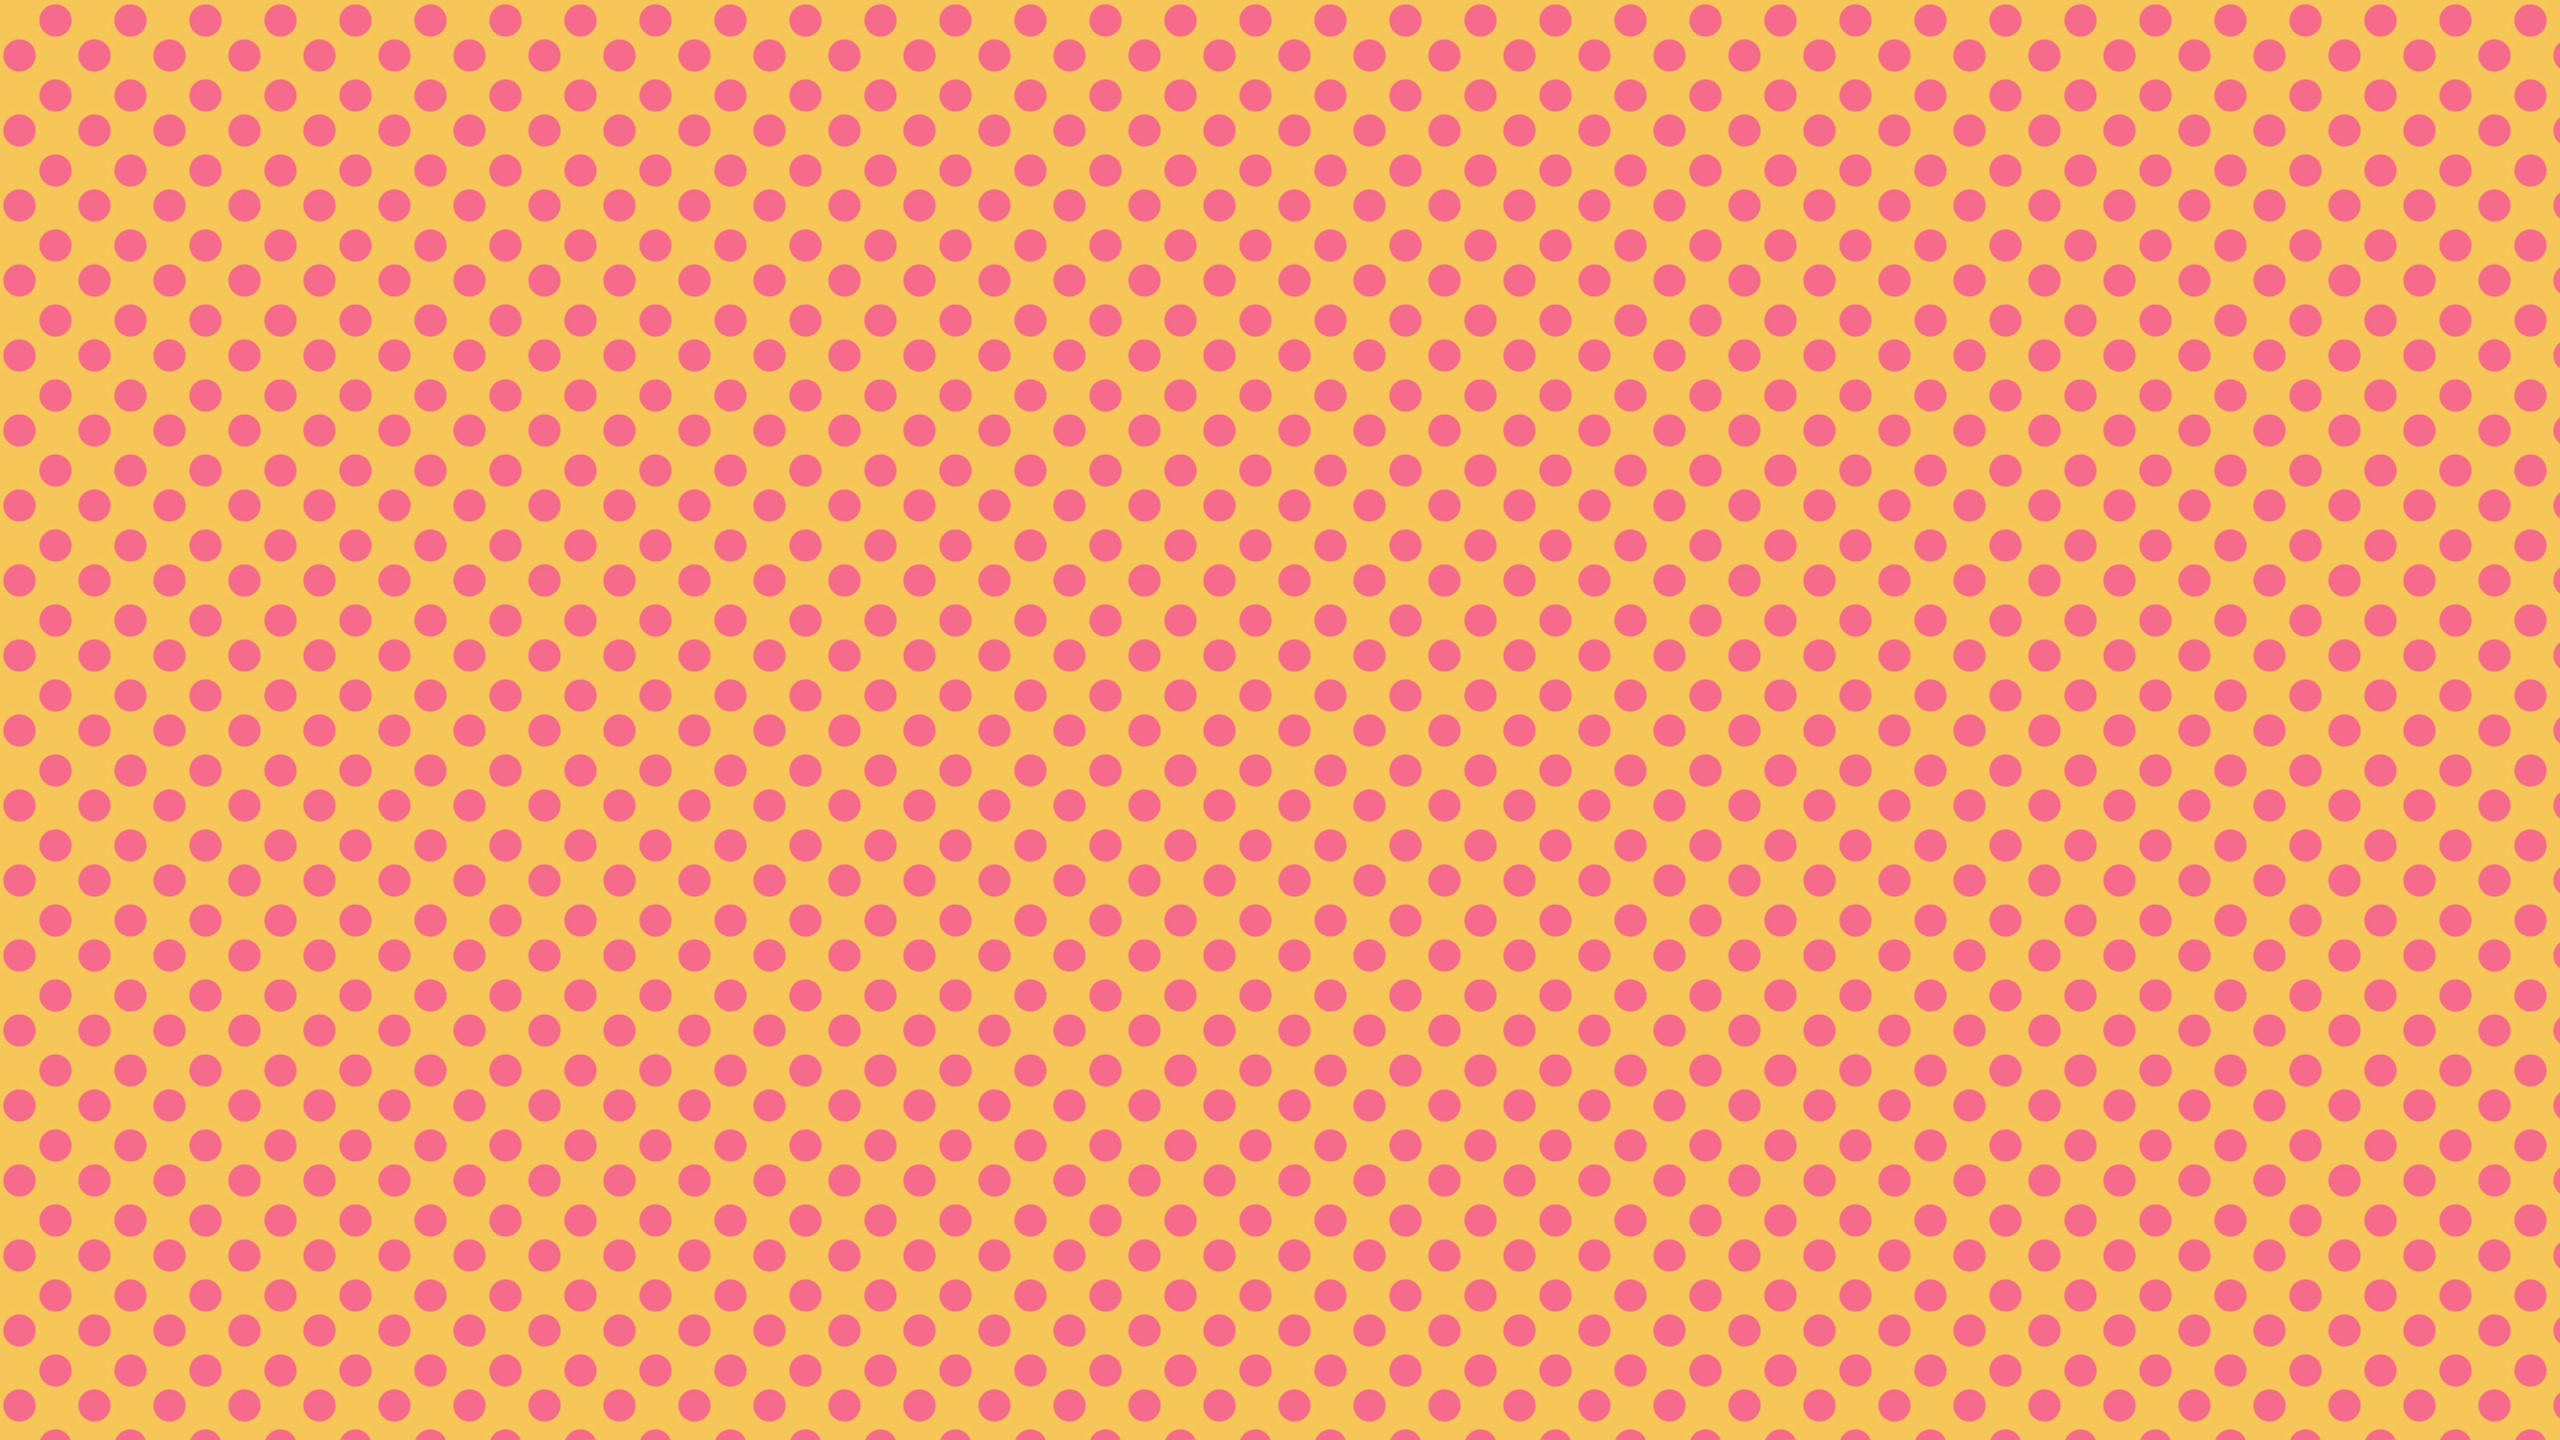 pink dot on orange background comic book download cool wallpaper #1033